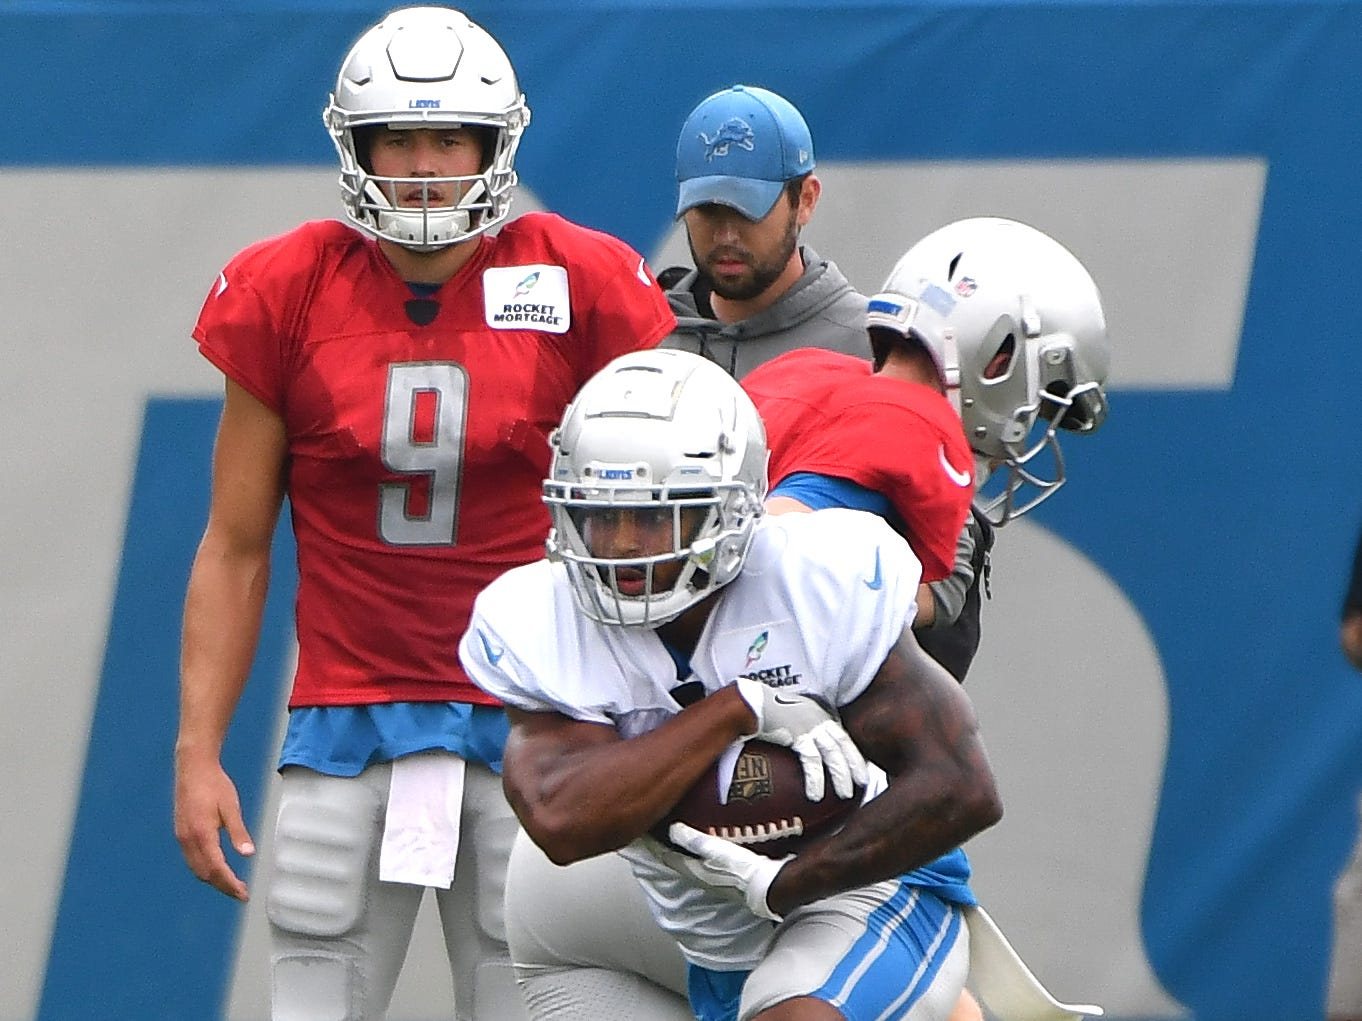 Lions running back Ameer Abdullah takes the handoff from quarterback Jake Rudock.